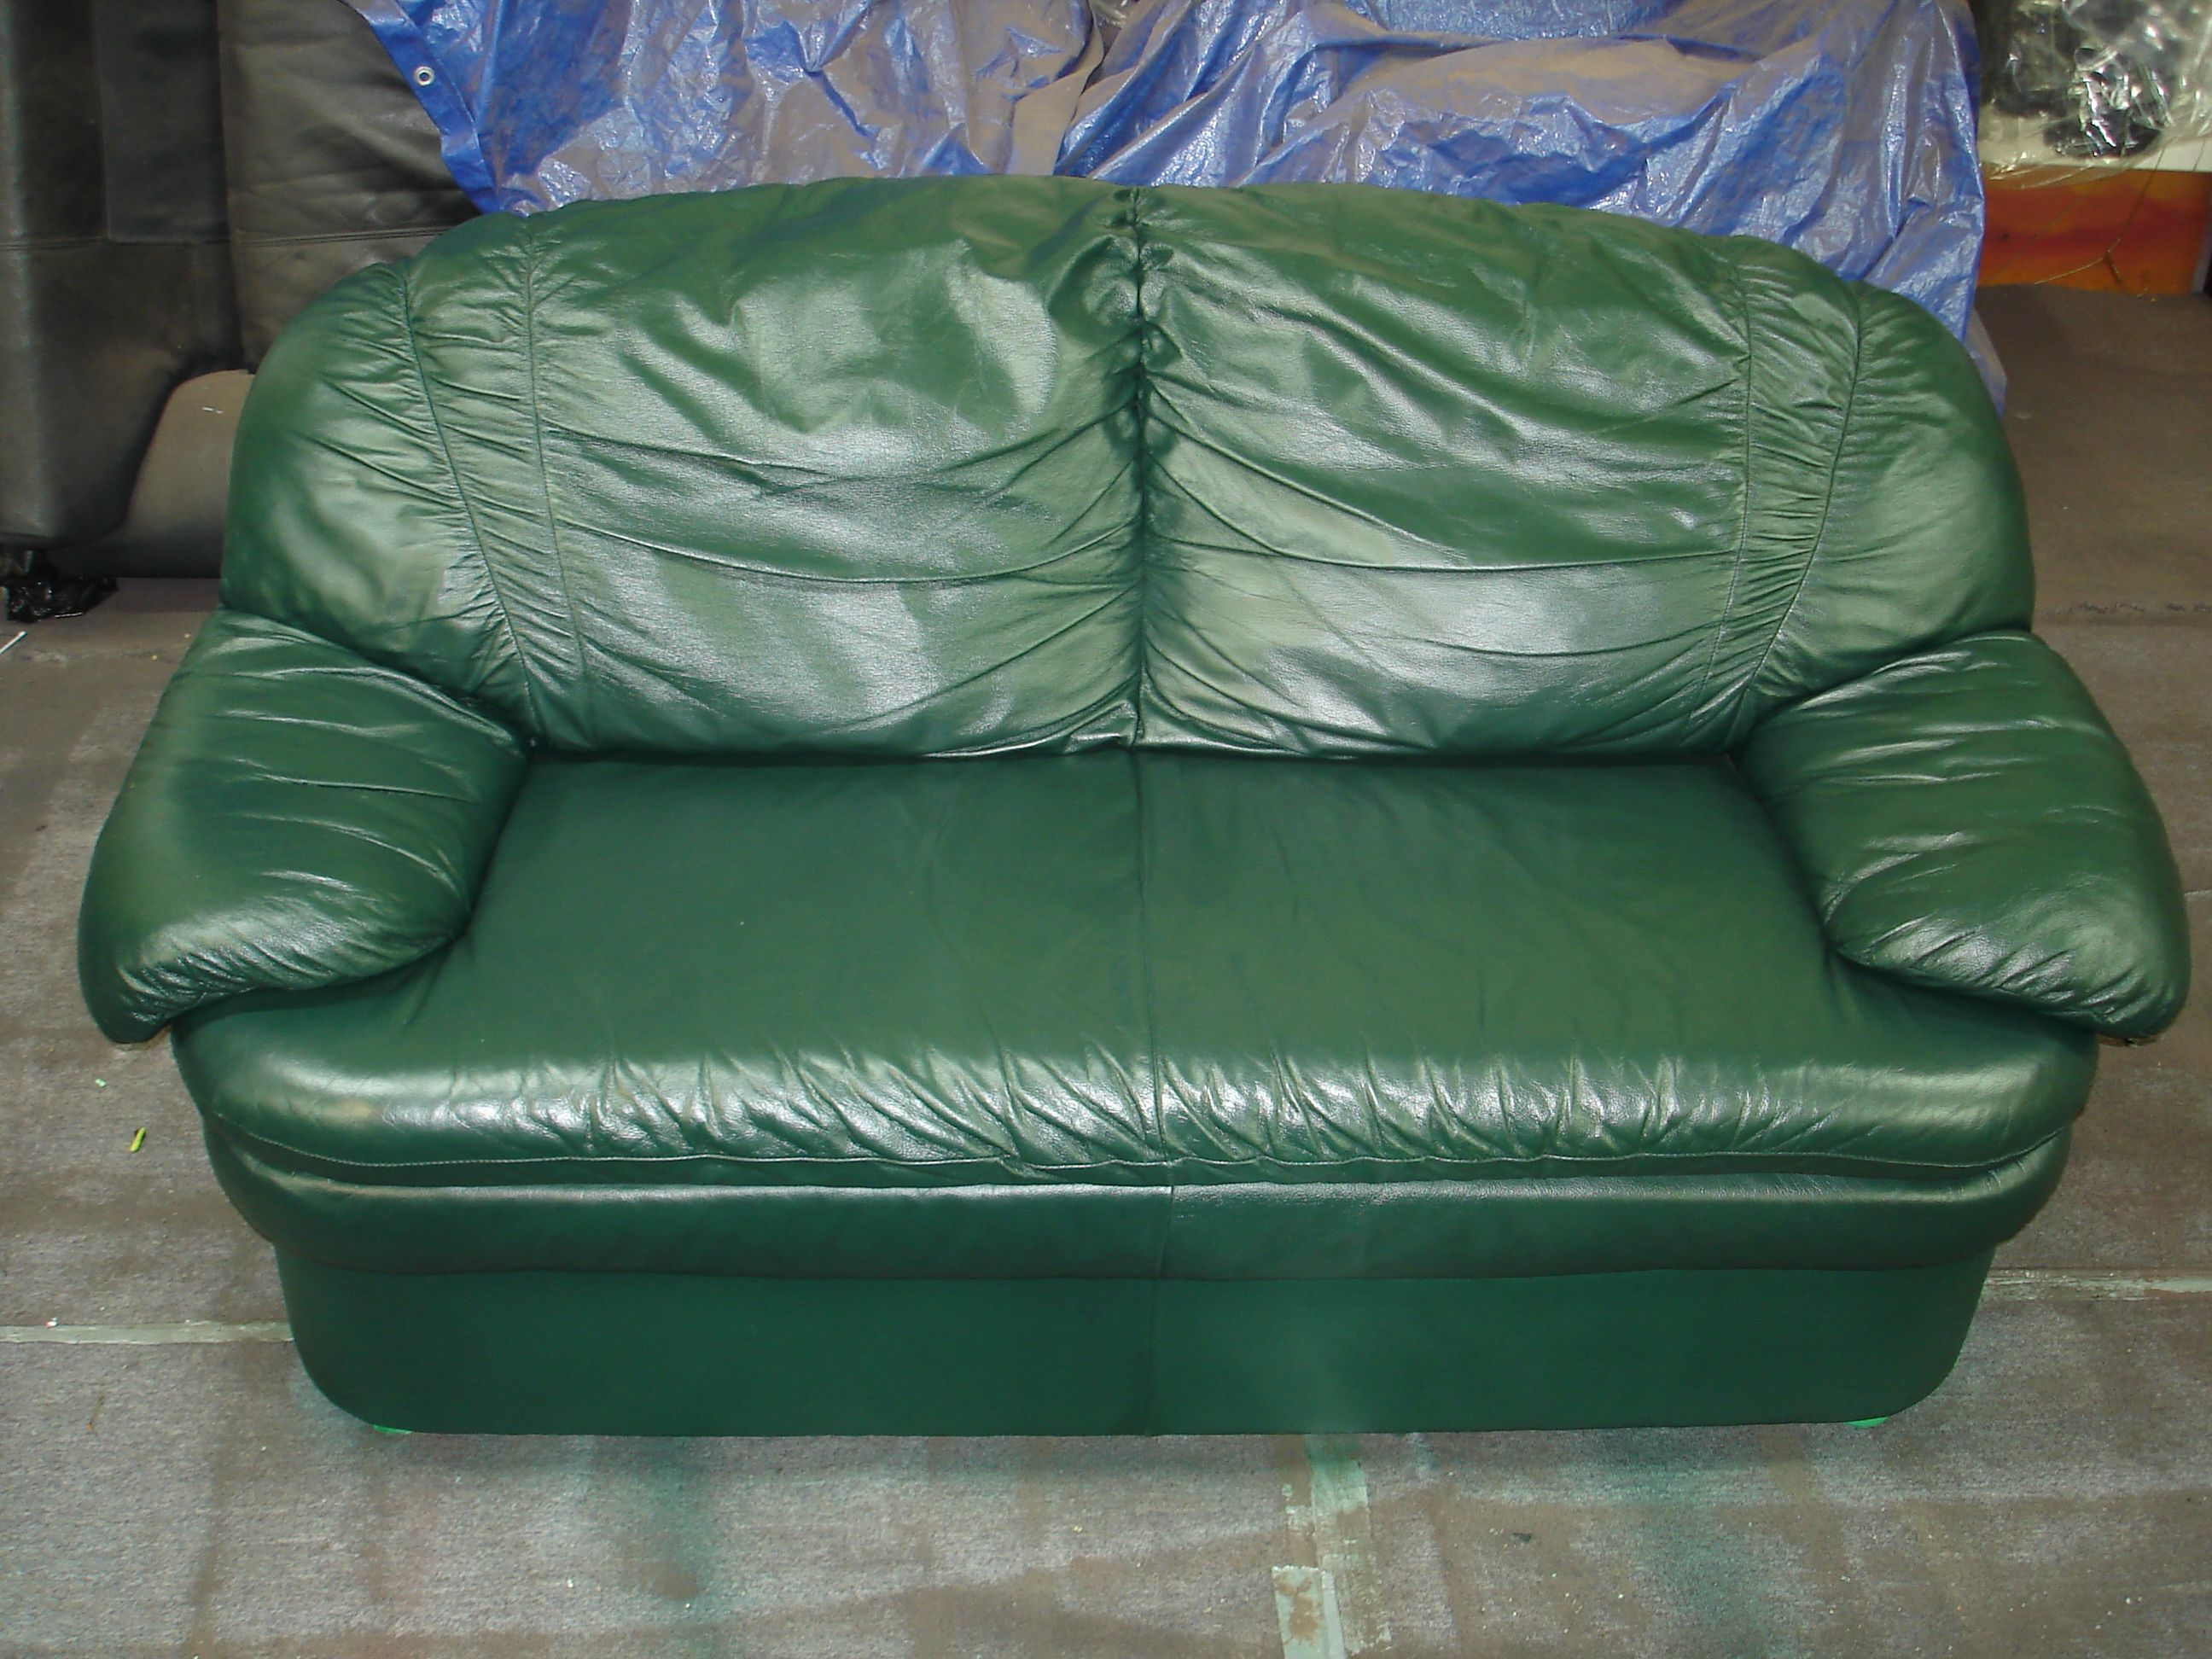 after picture of leather couch restored using leather repair filler and leather touch up dyes